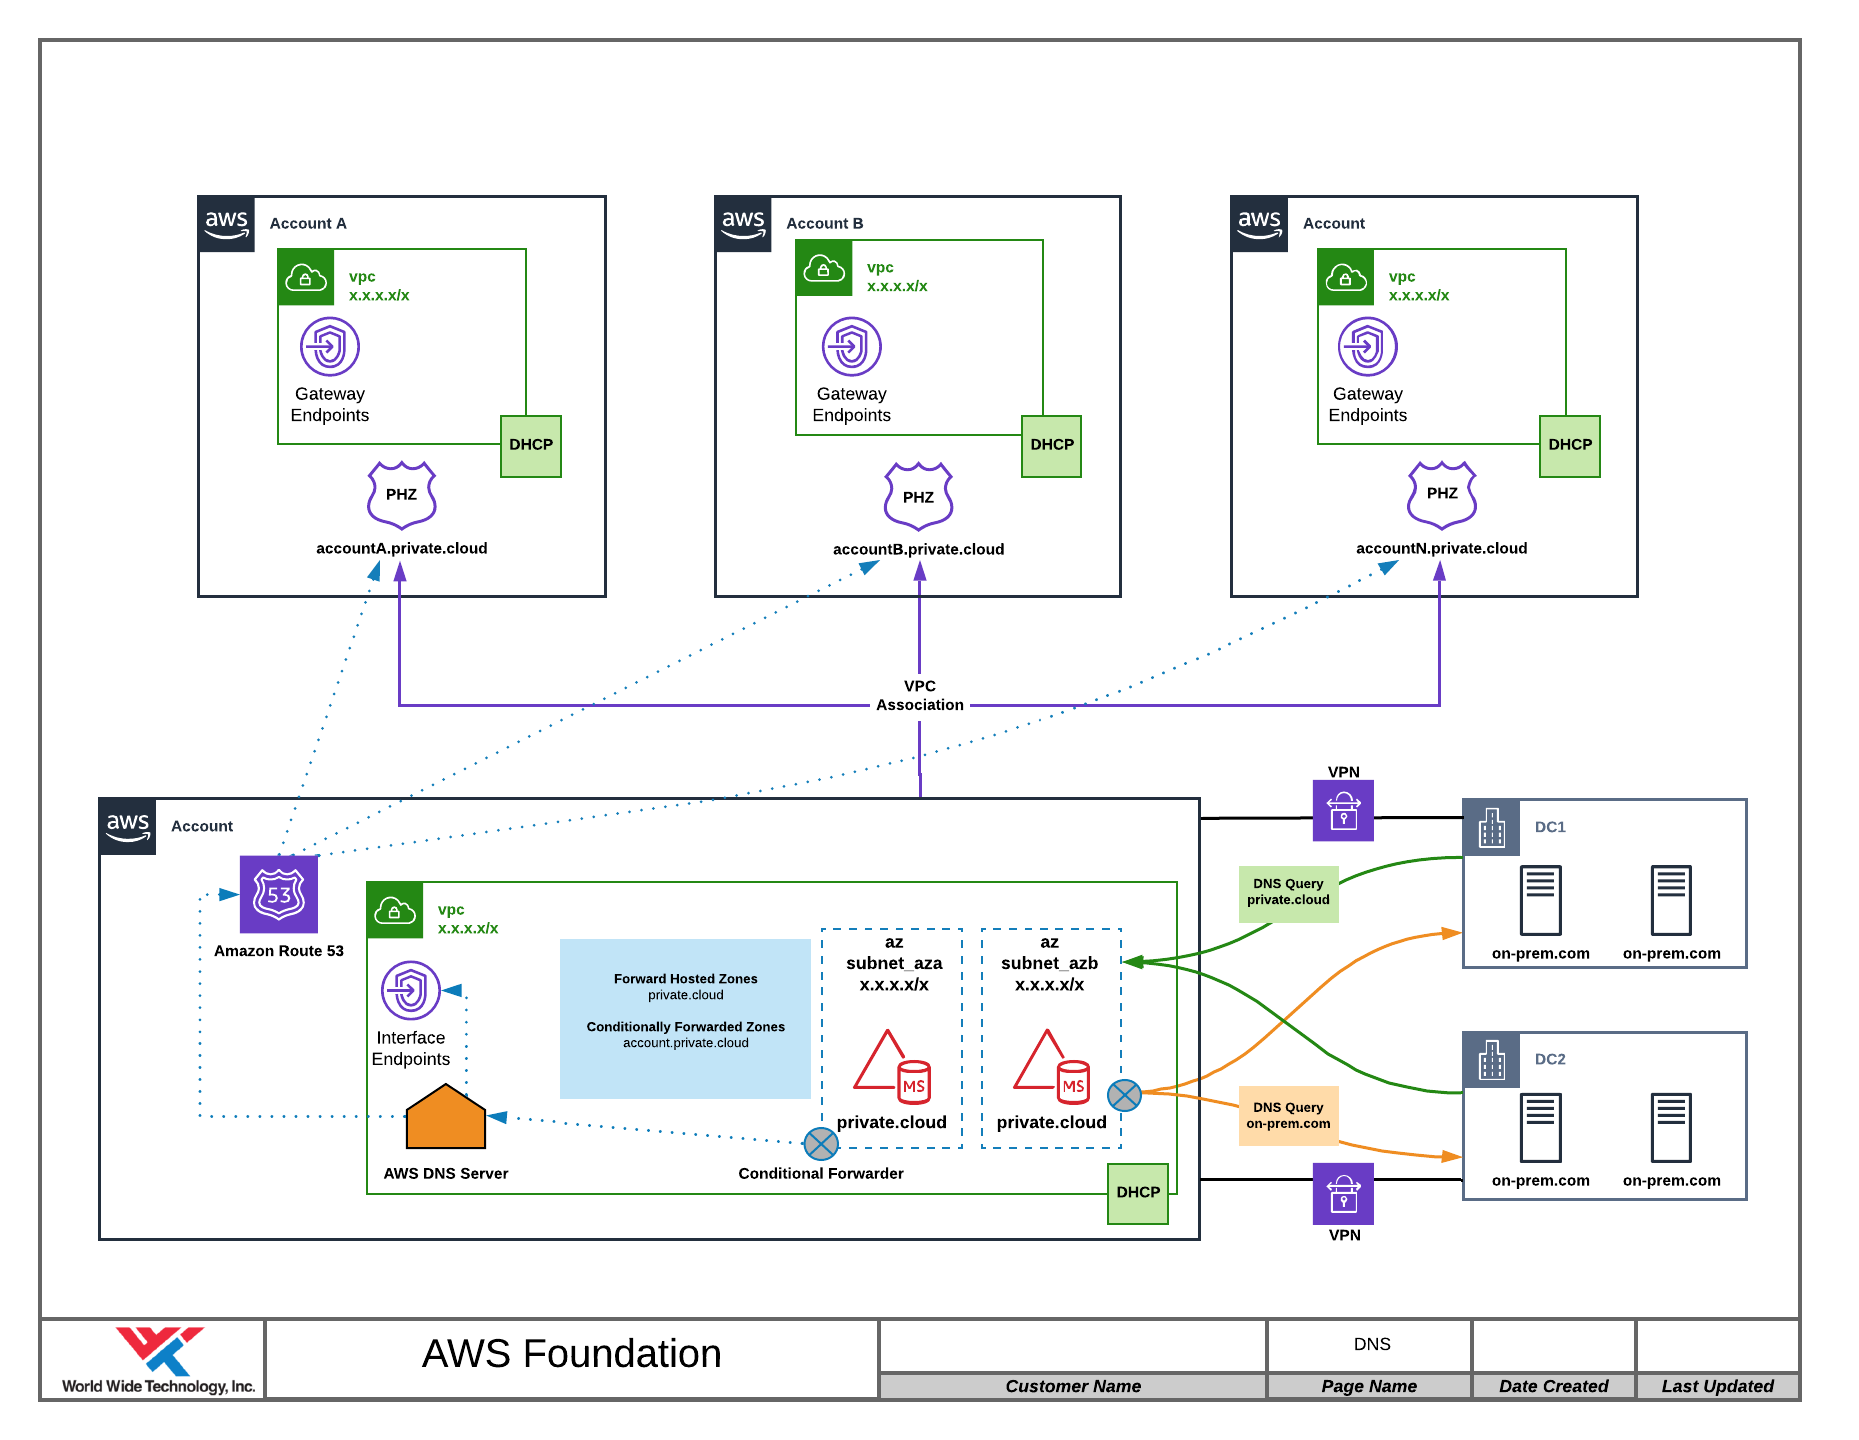 Sample Centralized DNS implementation